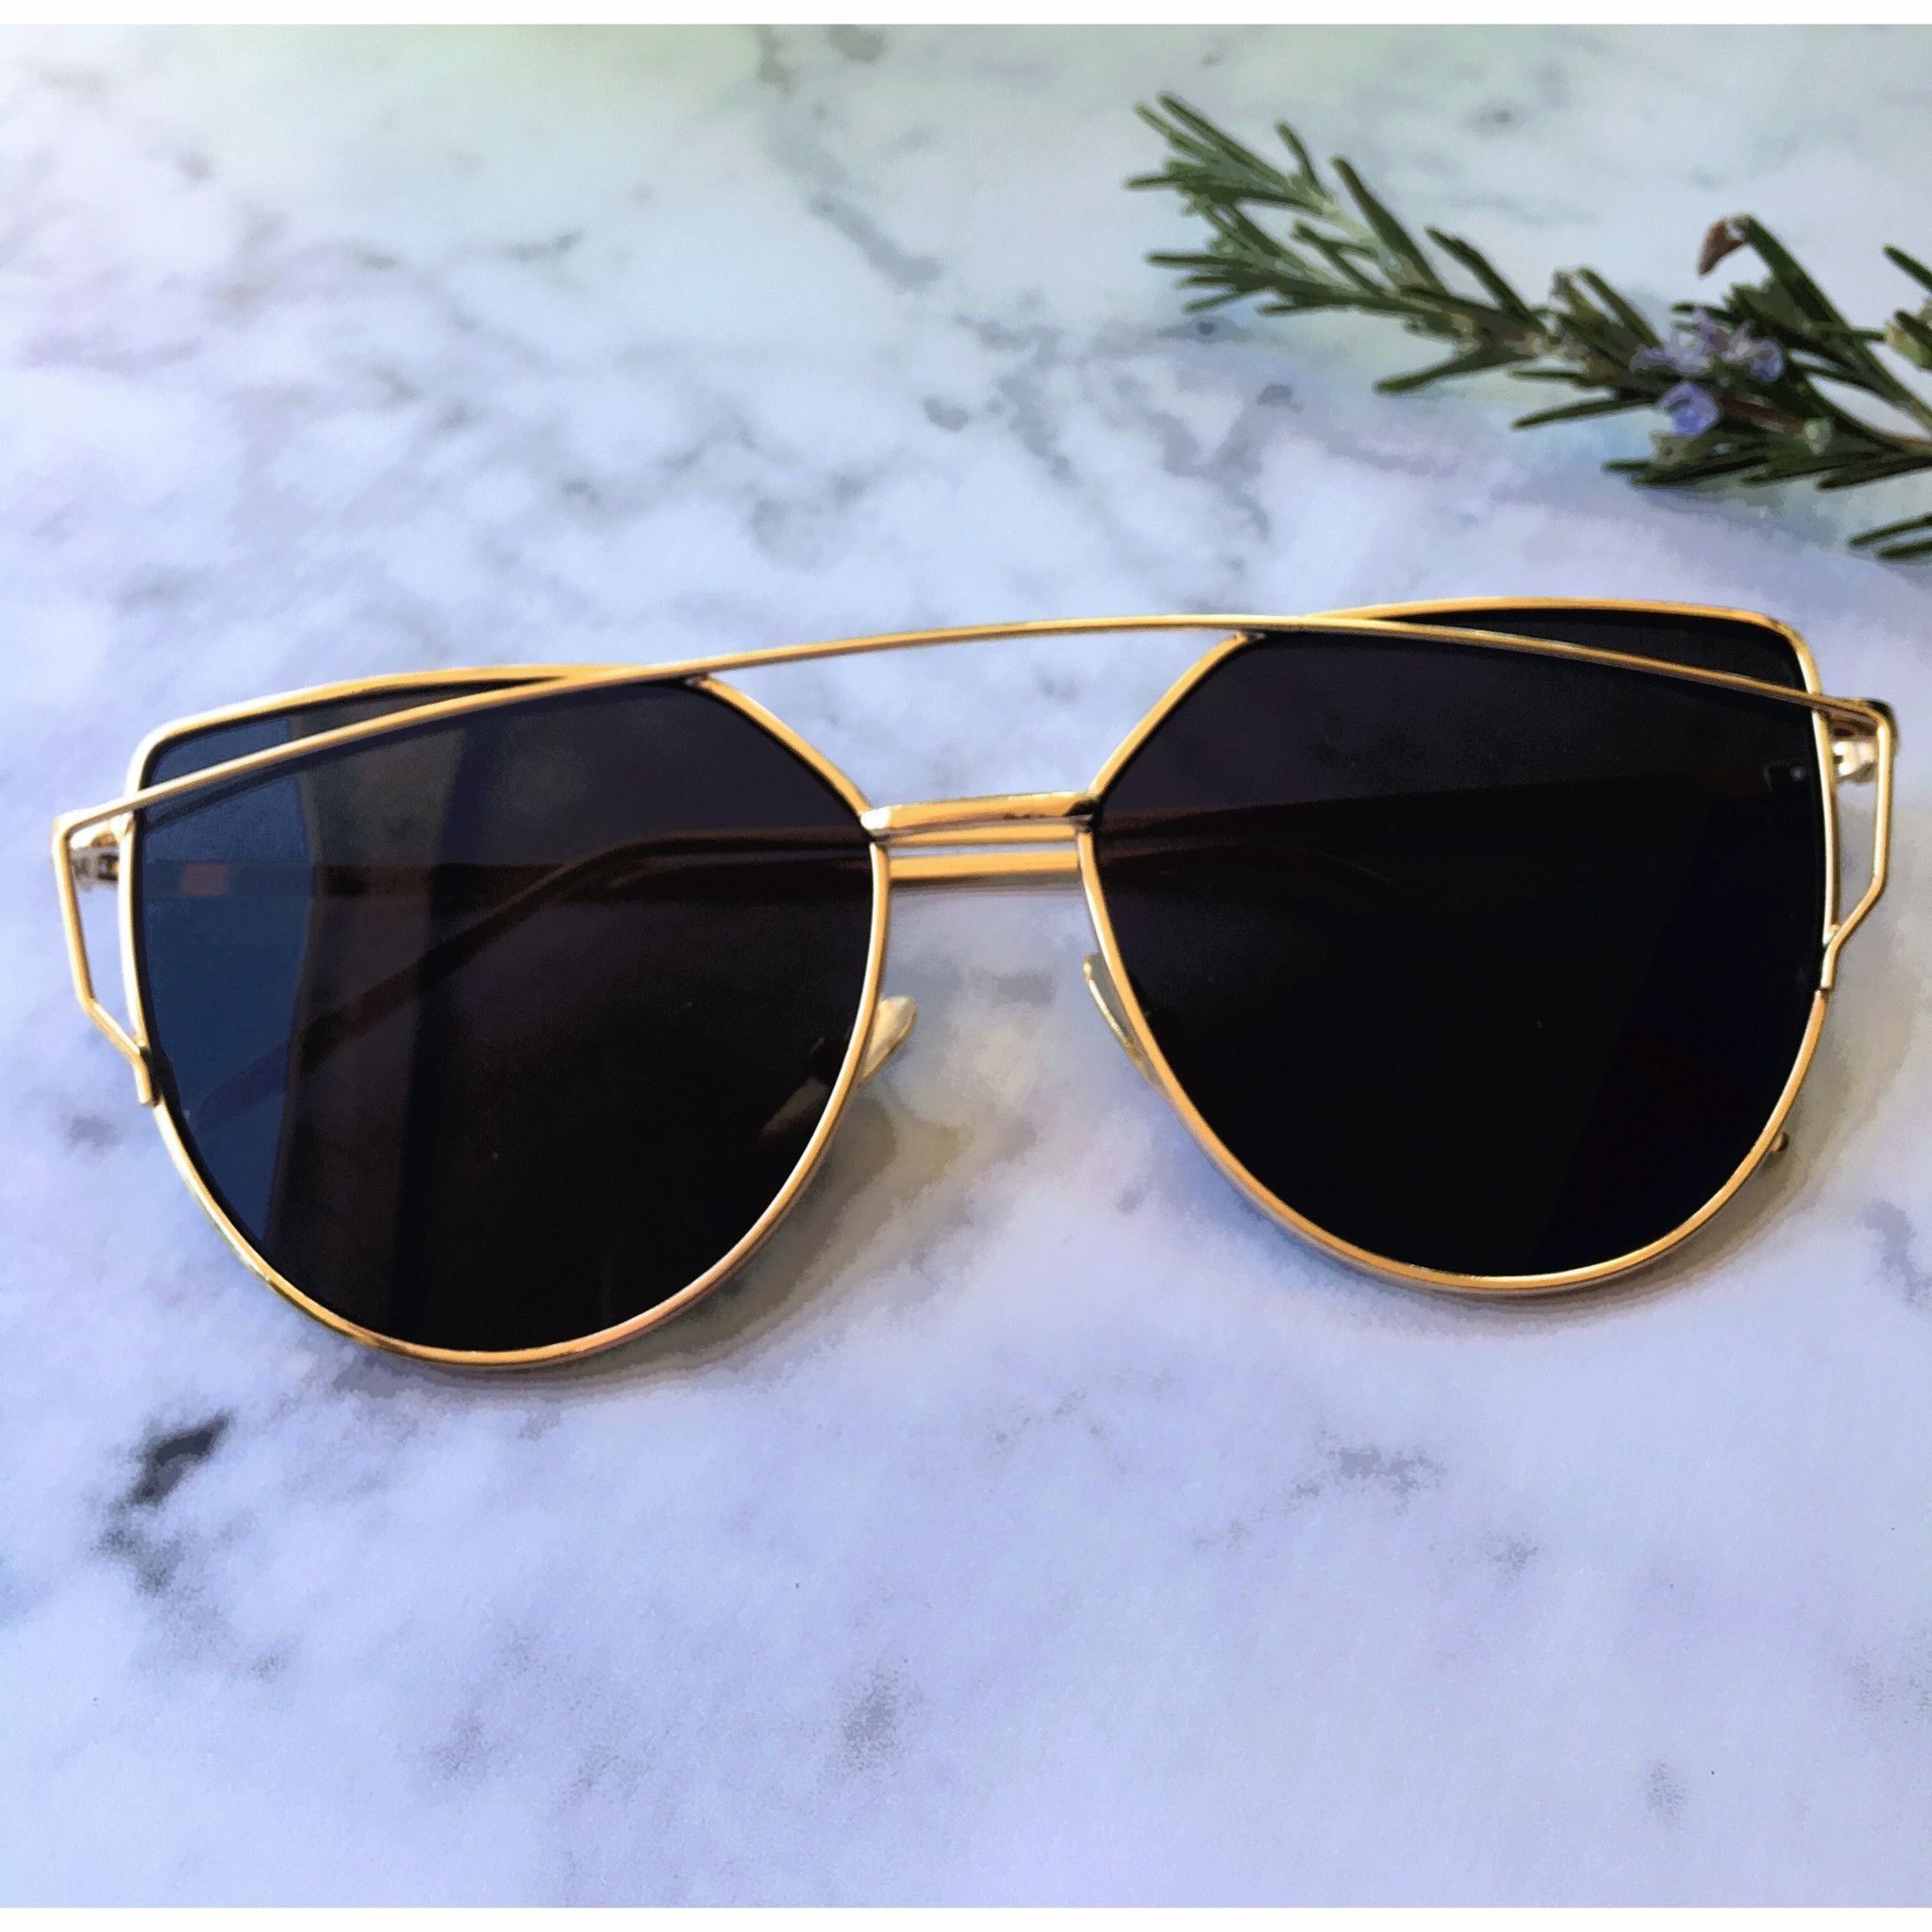 09a11f7598ef7 Cat Eye Aviator Sunglasses. This listing is for a pair of Cat Eye aviator  sunshades. Black Mirrored Sunglasses. Retro. Sunglasses. Wire sunglasses.